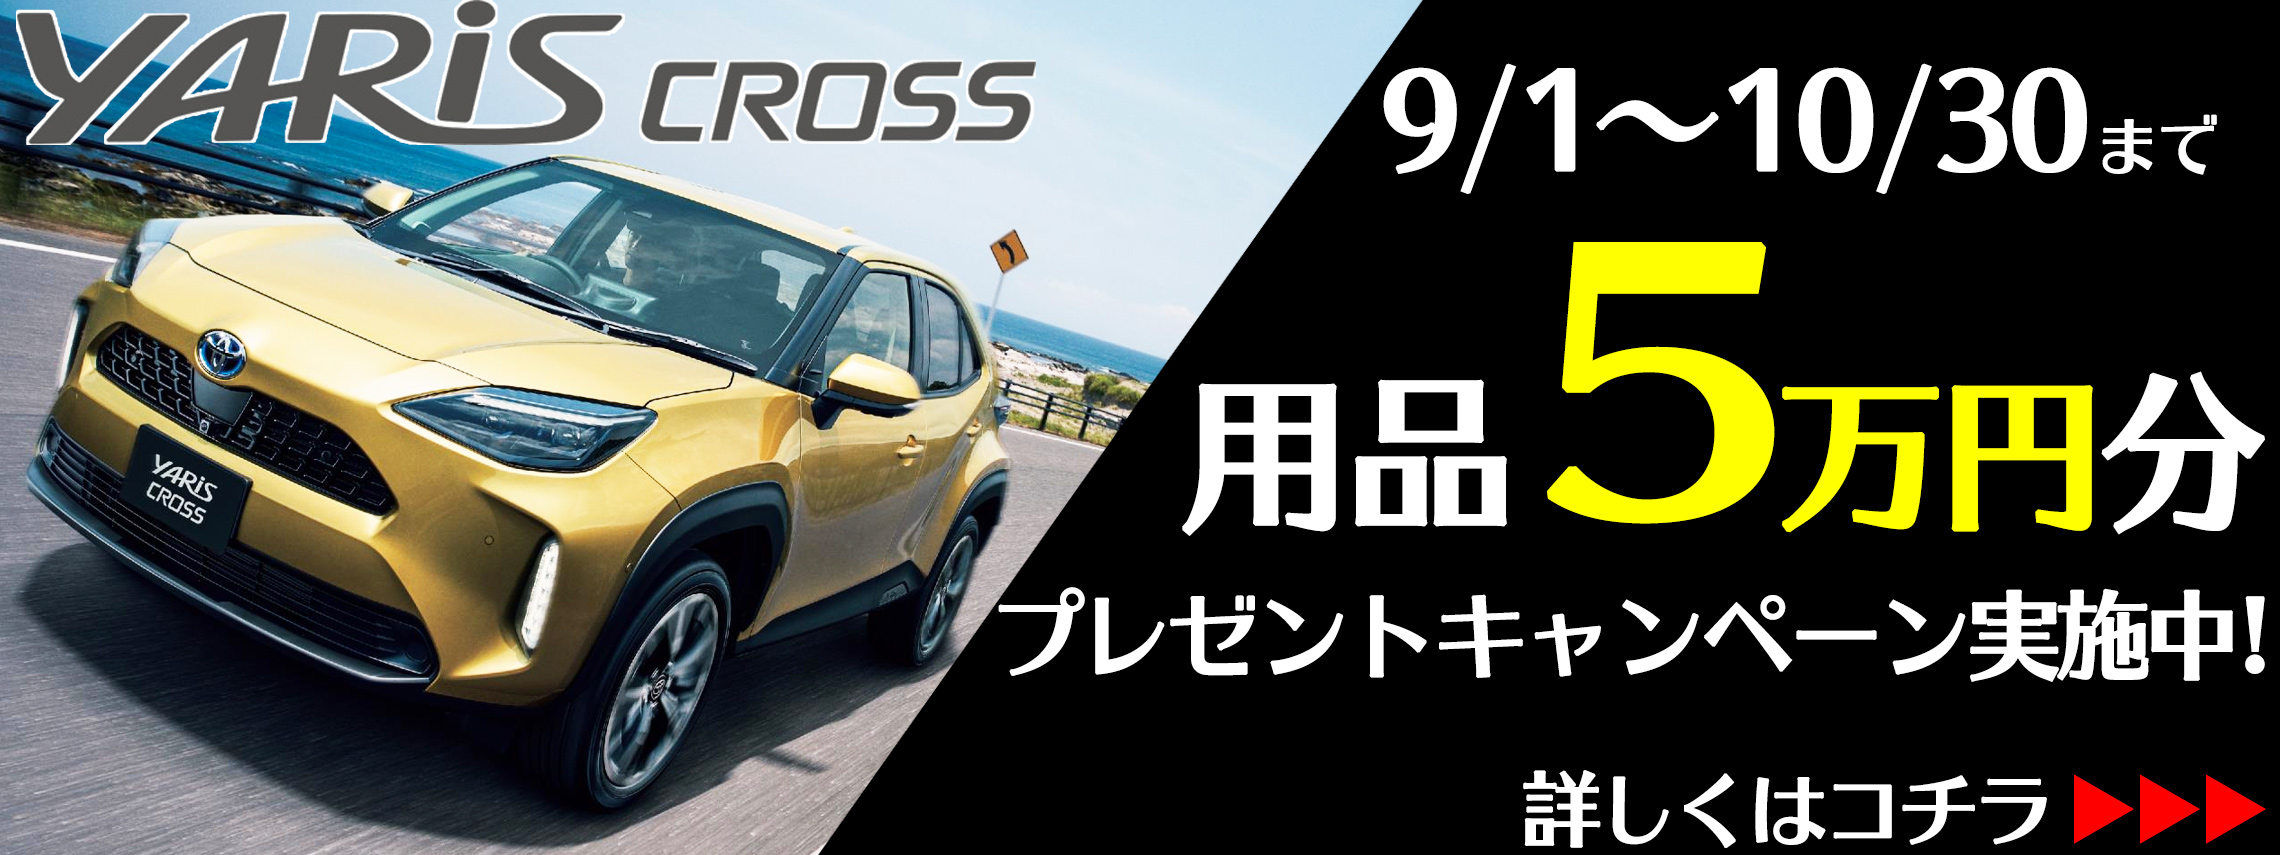 yariscross-campaign